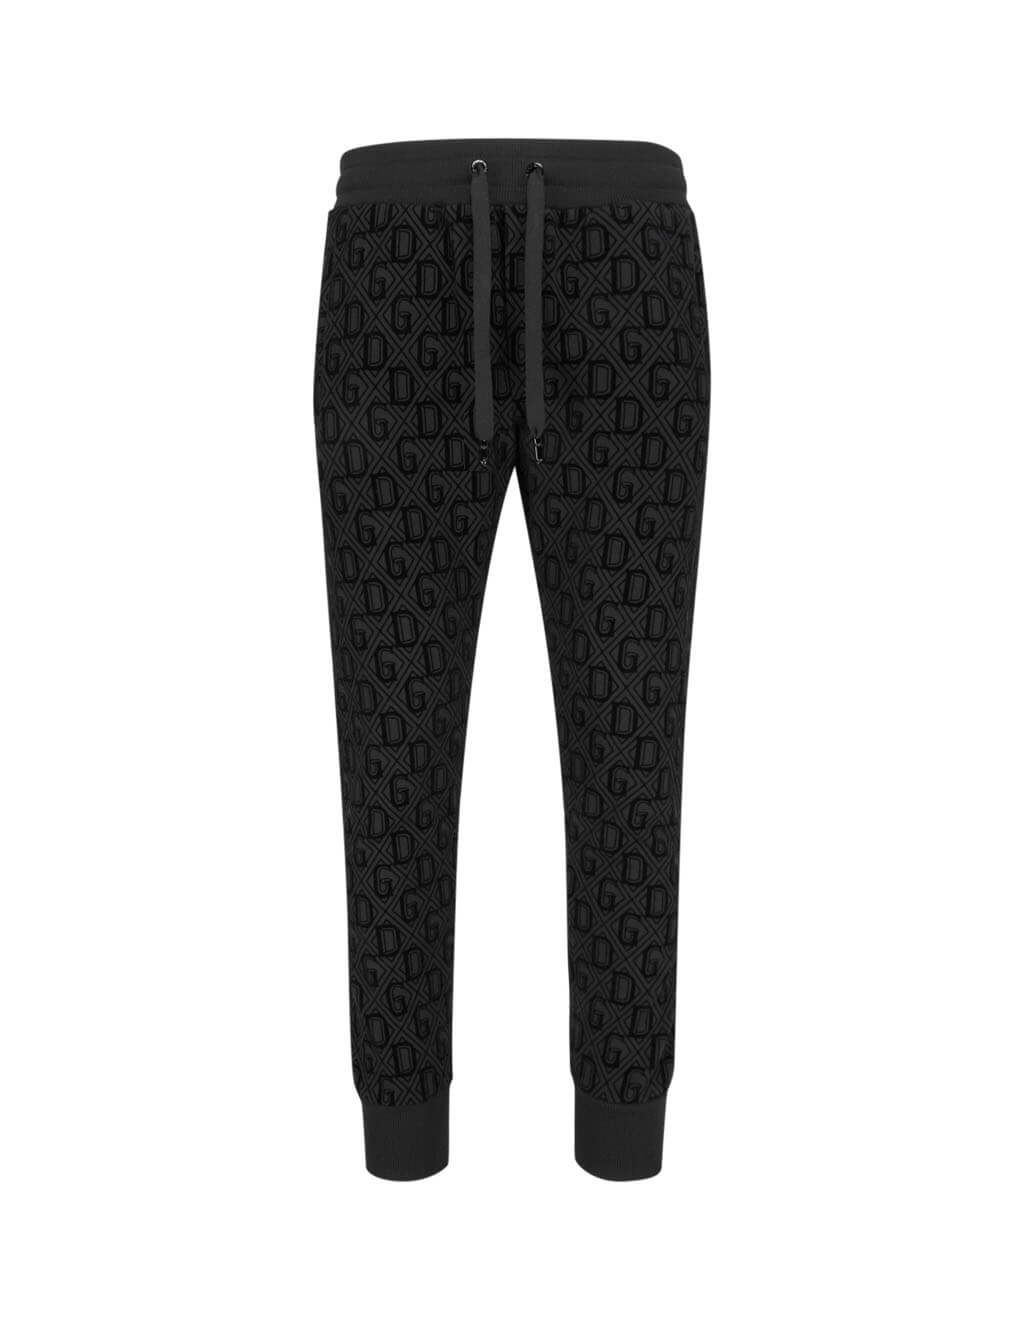 Men's Black Dolce&Gabbana Flocked Print Jogging Pants GYROATG7VDBHN67N